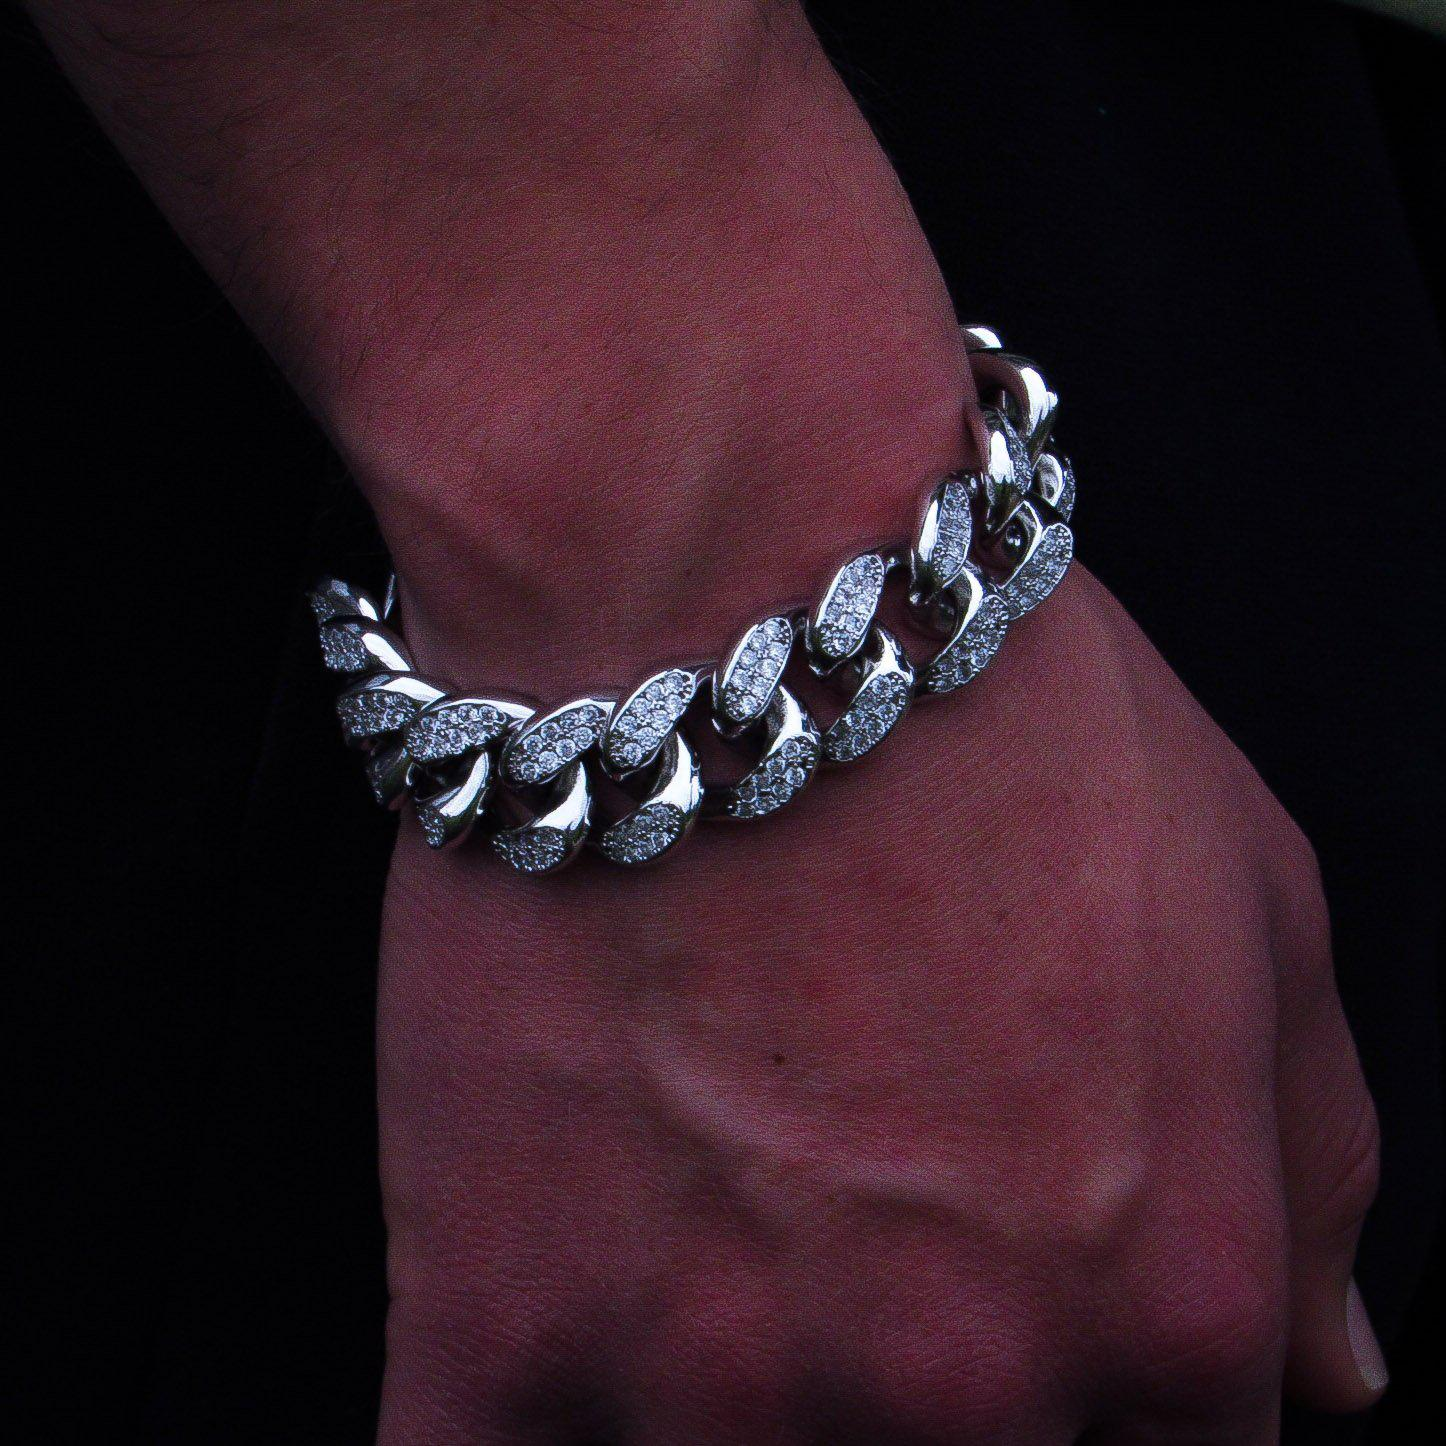 19mm Diamond Miami Cuban Link Bracelet in White Gold - IcedGold